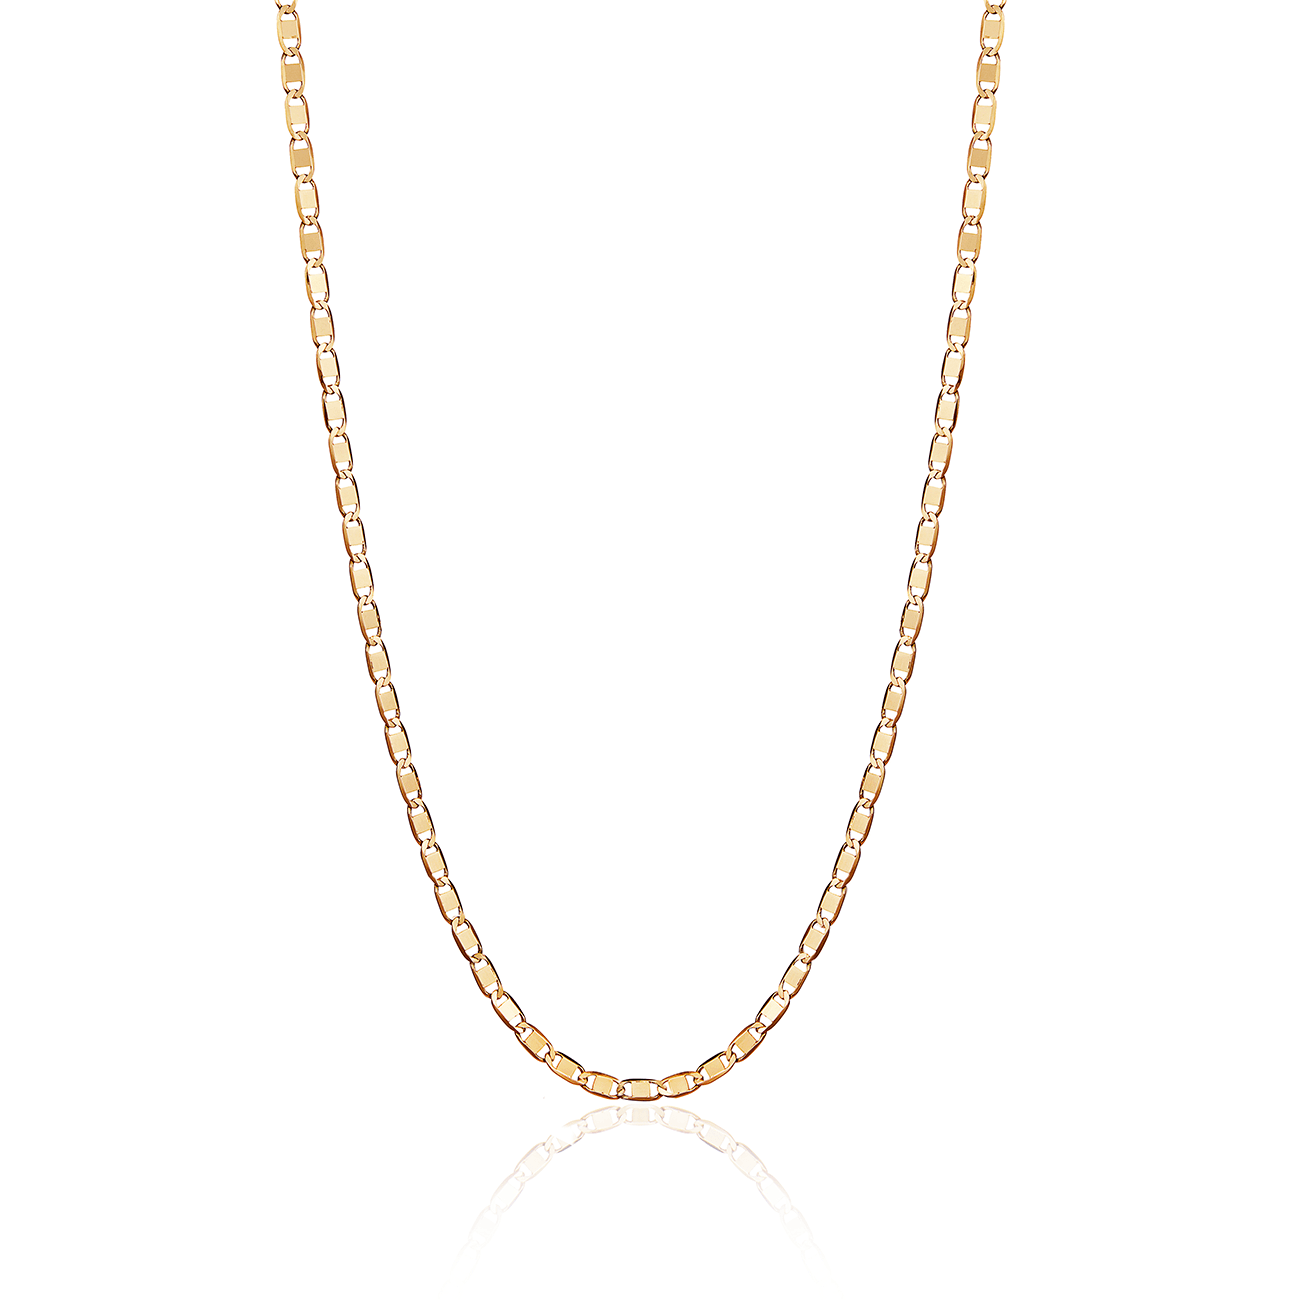 Bobbi Chain Necklace